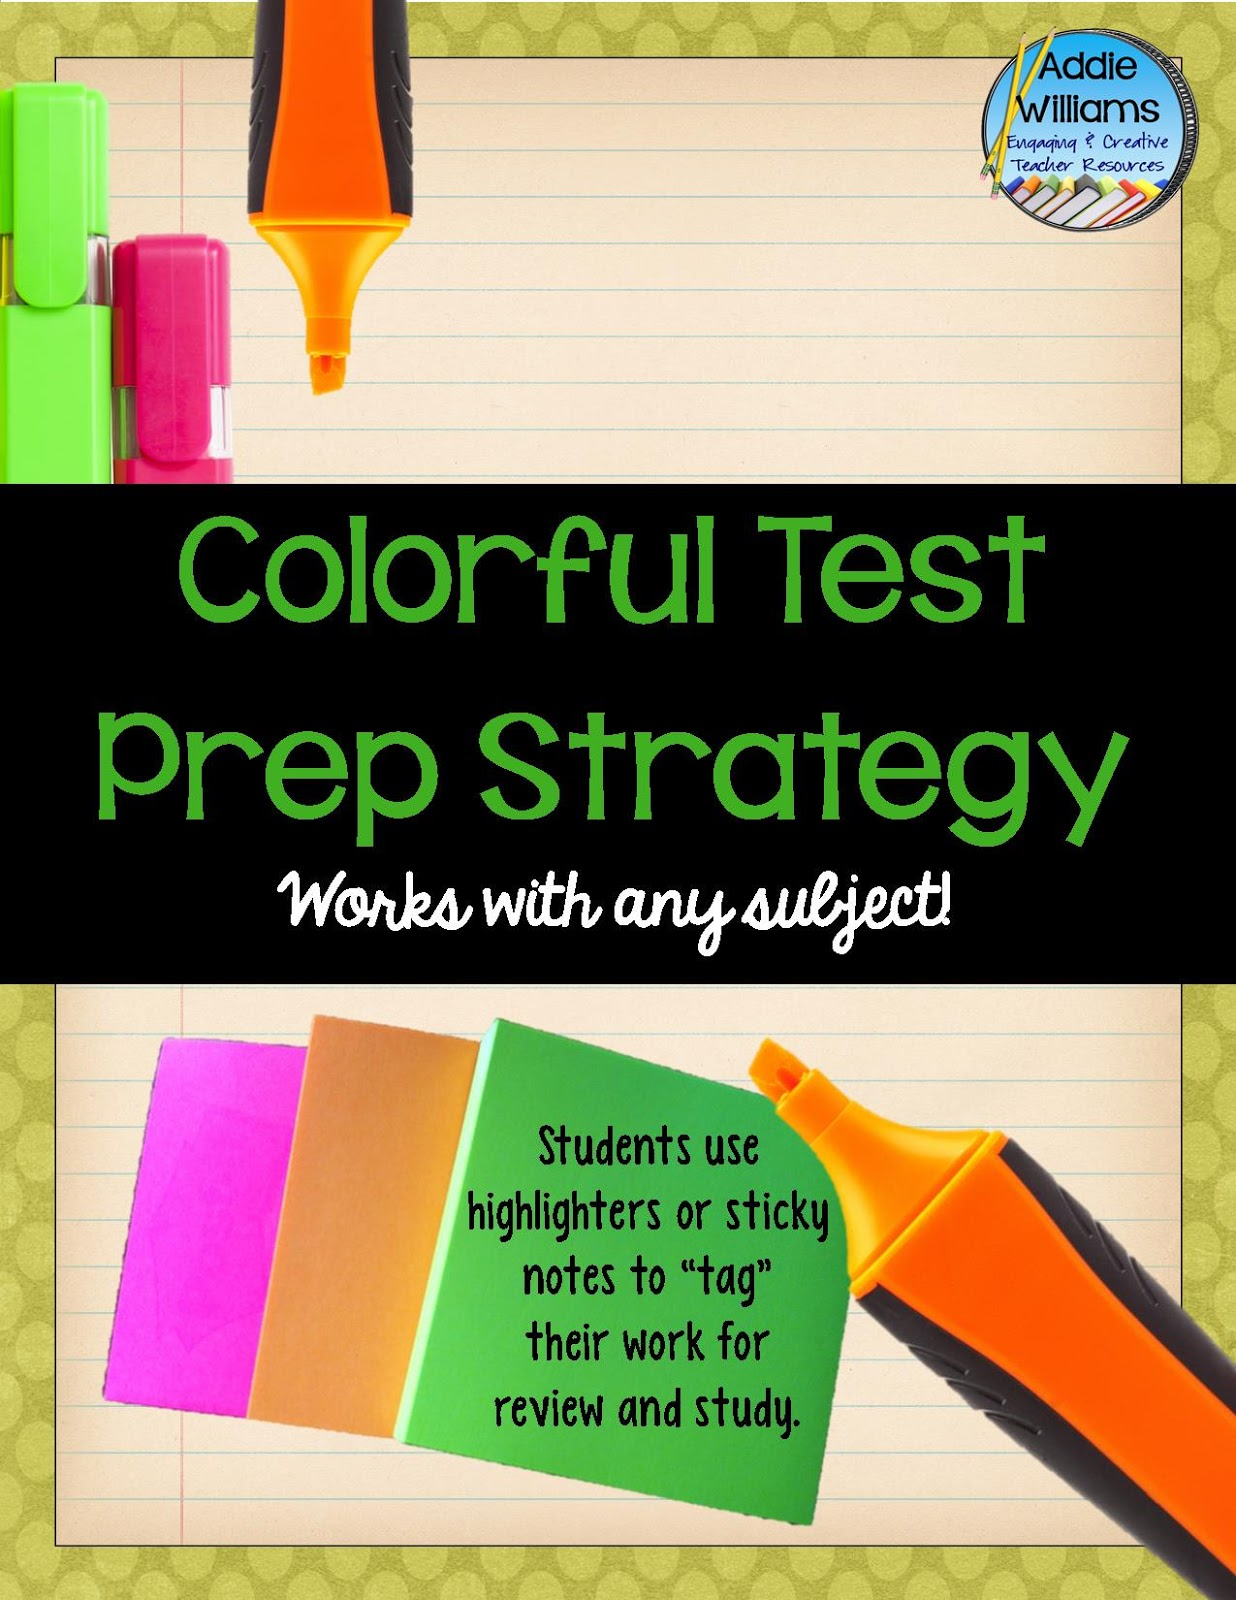 https://www.teacherspayteachers.com/Product/Test-Prep-Strategy-for-ANY-subject-FREE-534109